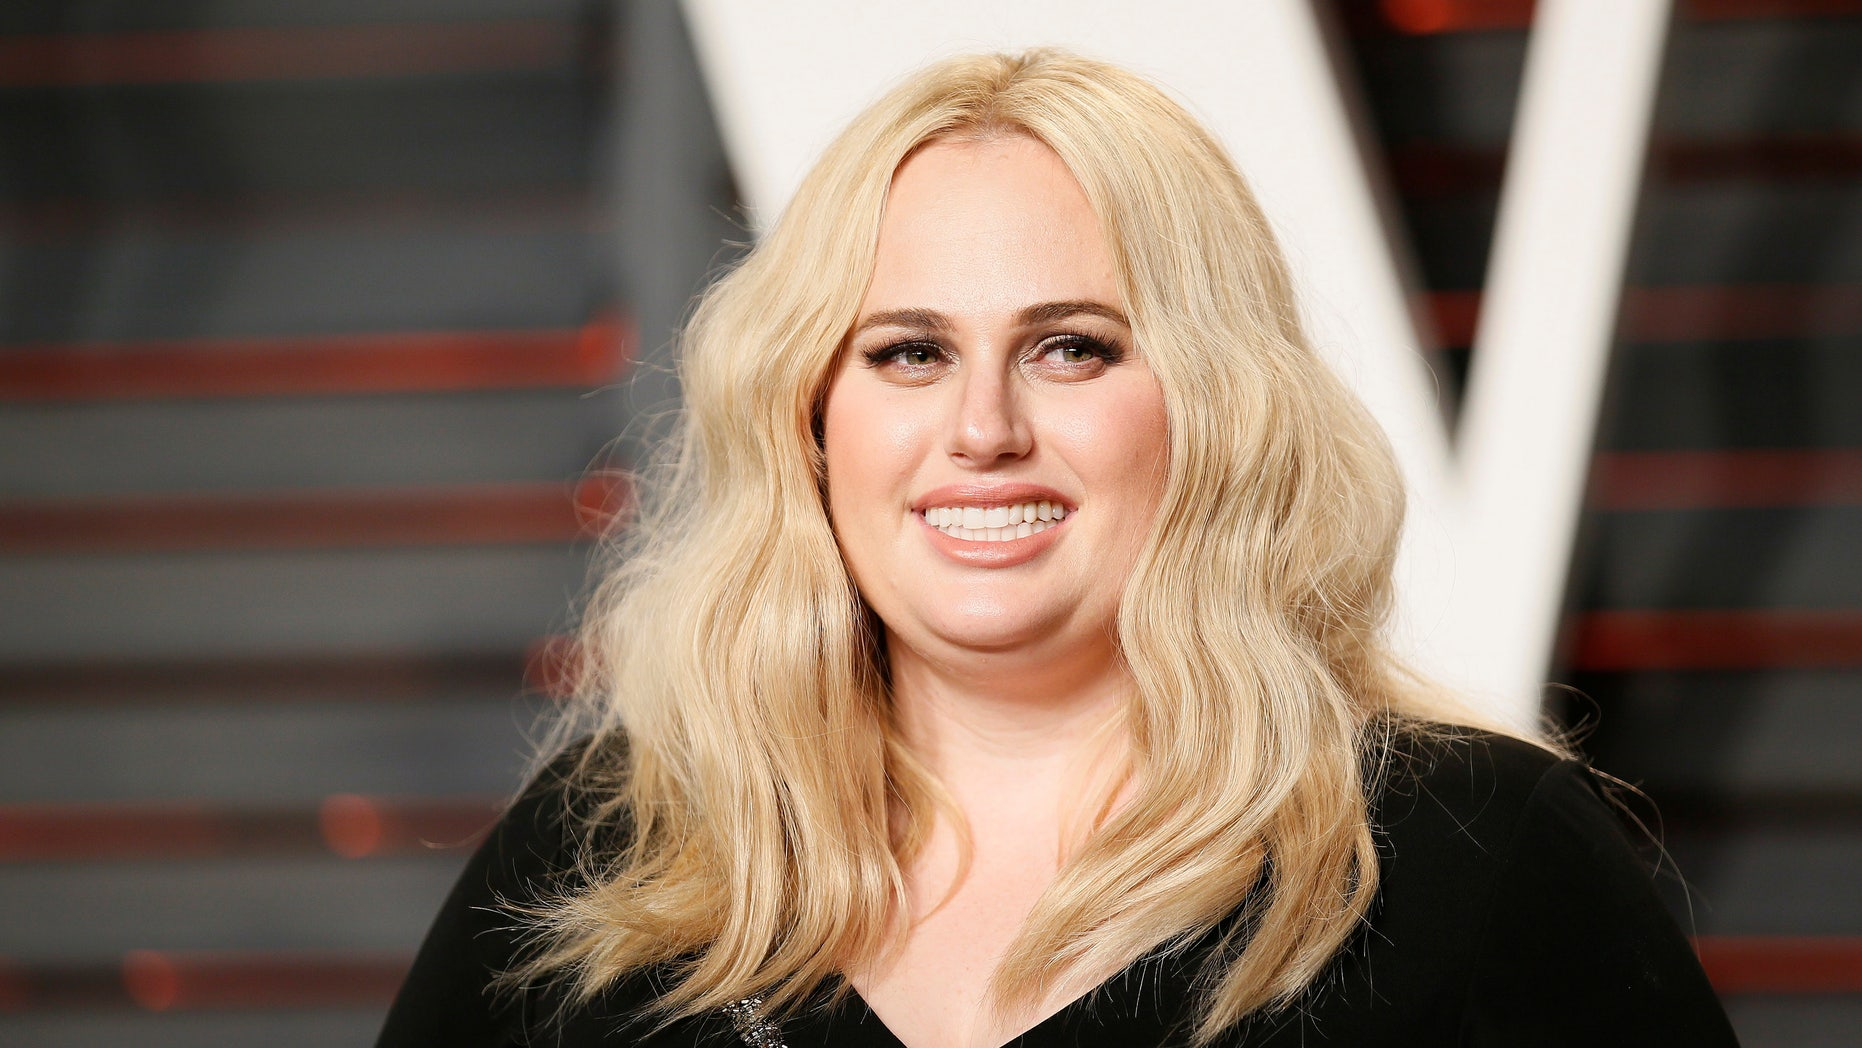 Rebel Wilson's defamation payout reduced by 90%